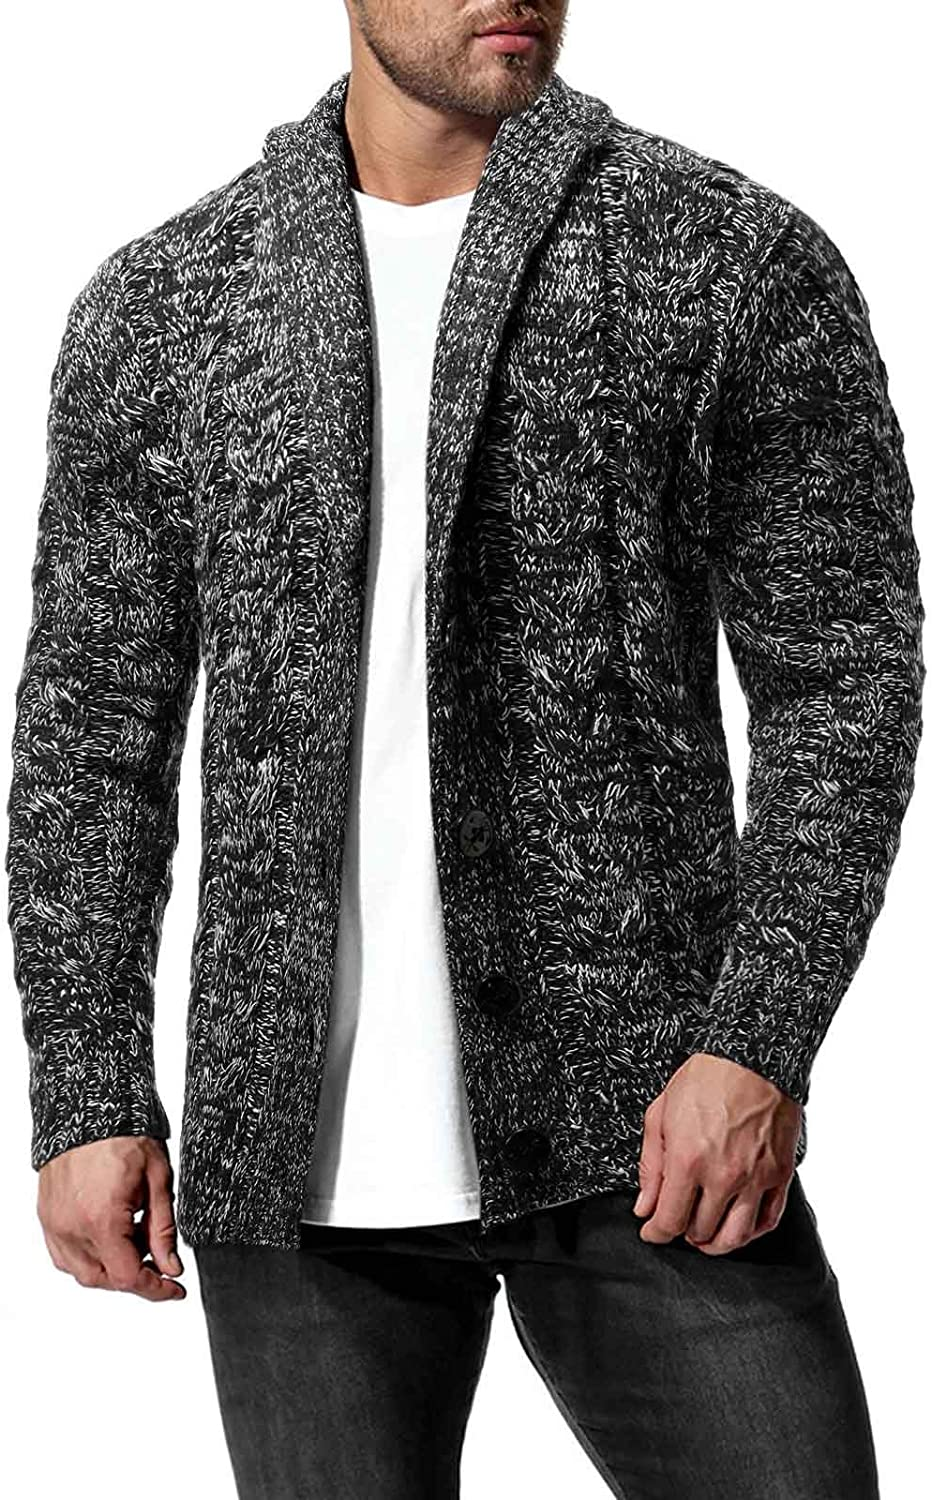 ZSBAYU Men's Fashion Cable-Knit Cardigan C Collar Shawl Max 63% OFF Sweaters Japan's largest assortment